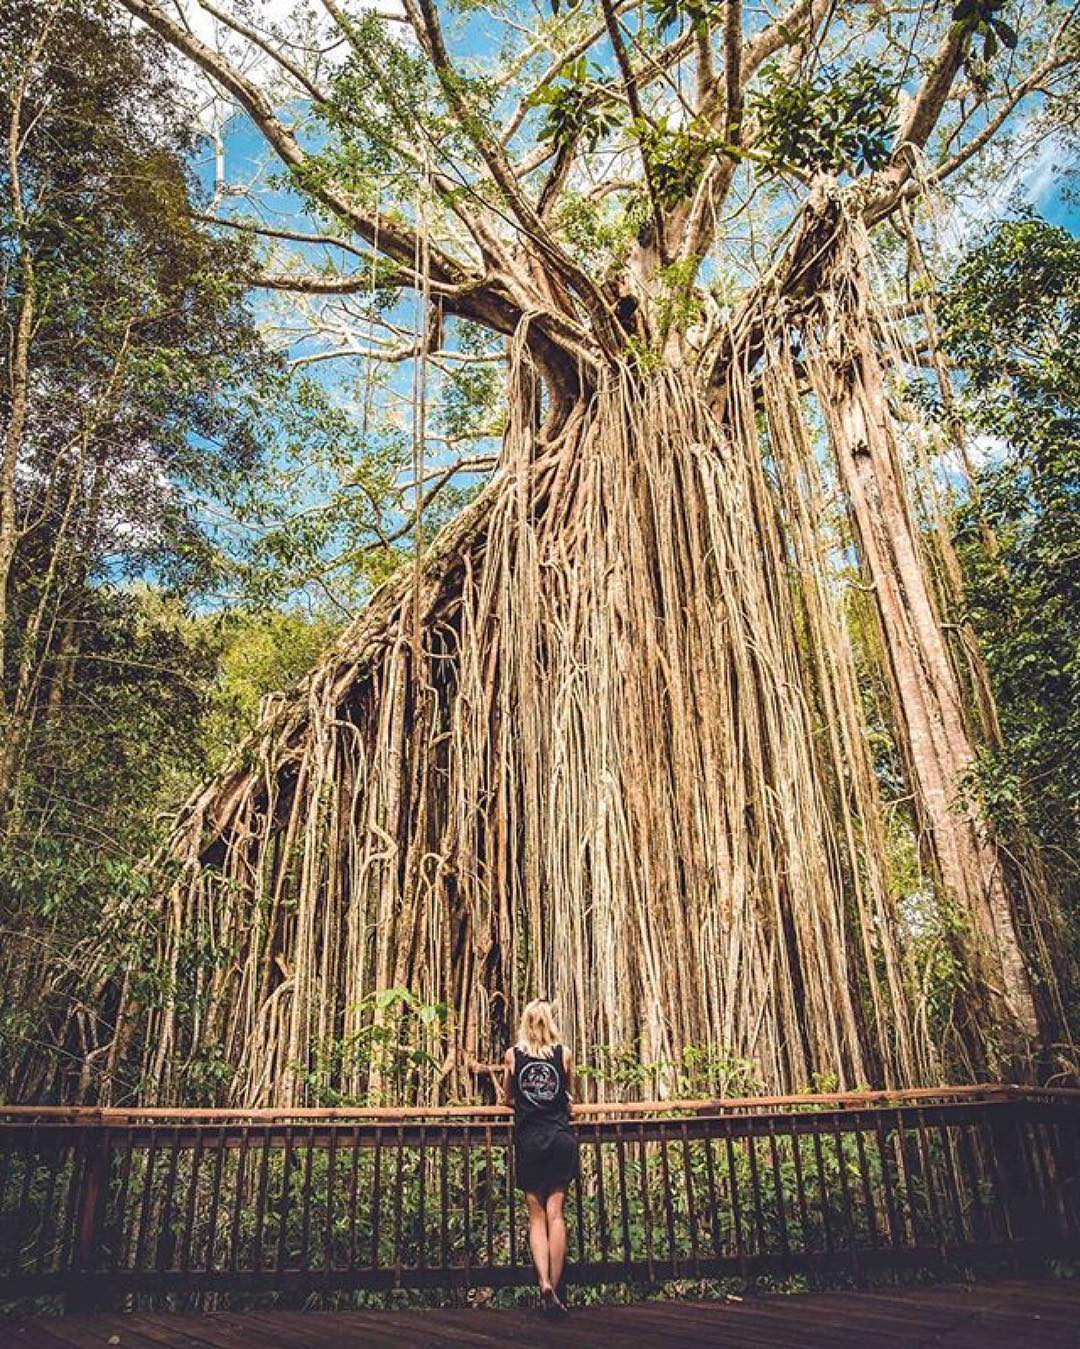 Short Walks on the Atherton Tablelands - Curtain Fig Tree by therawphoto